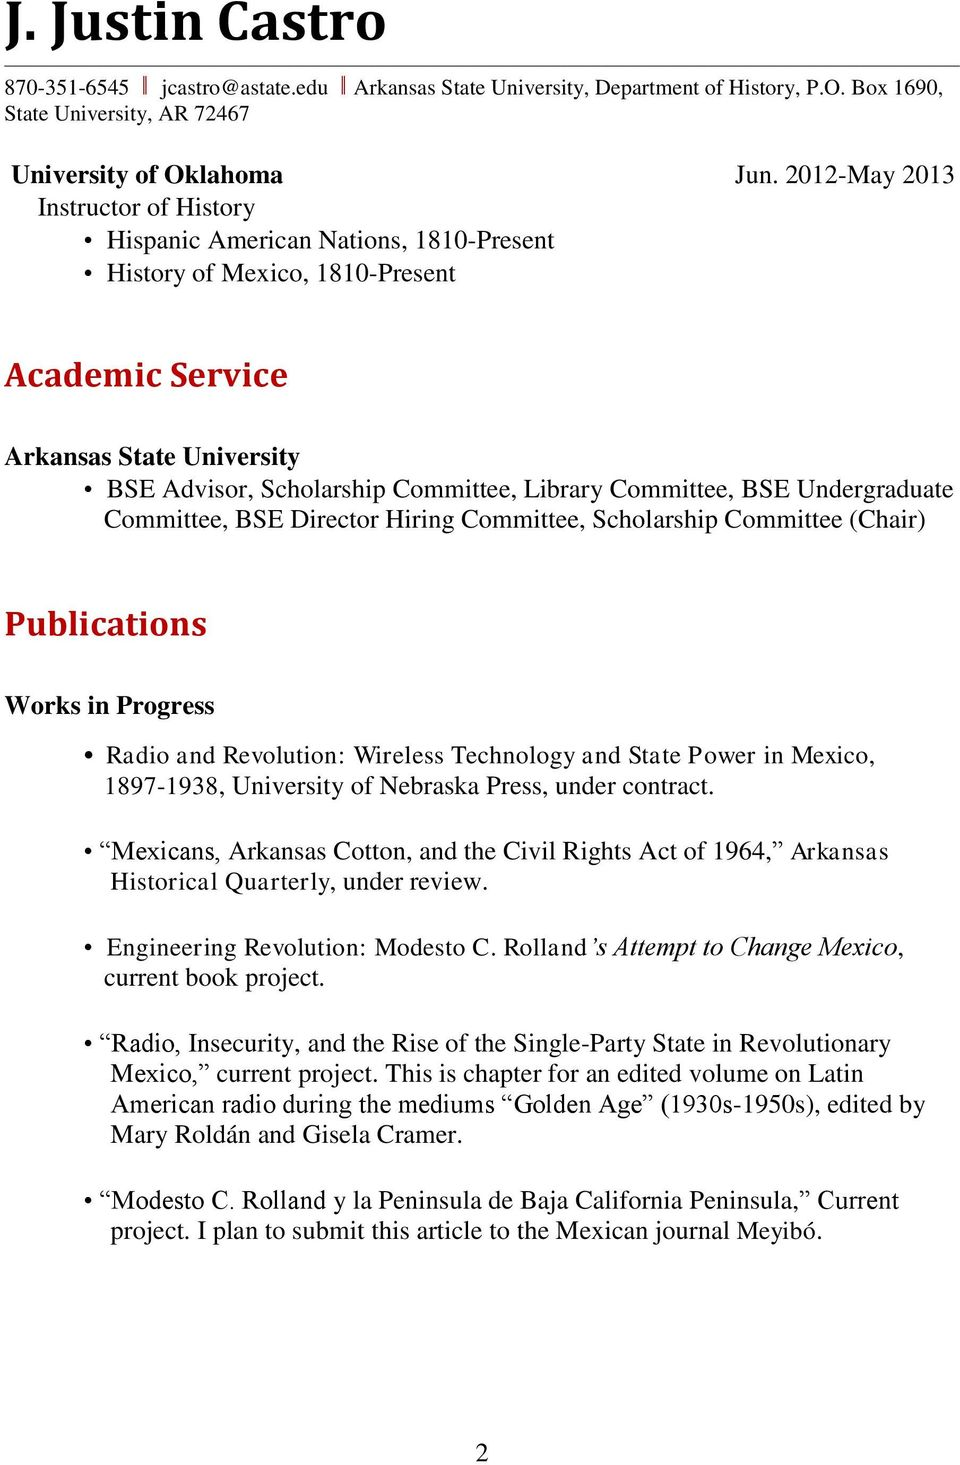 Committee, BSE Undergraduate Committee, BSE Director Hiring Committee, Scholarship Committee (Chair) Publications Works in Progress Radio and Revolution: Wireless Technology and State Power in